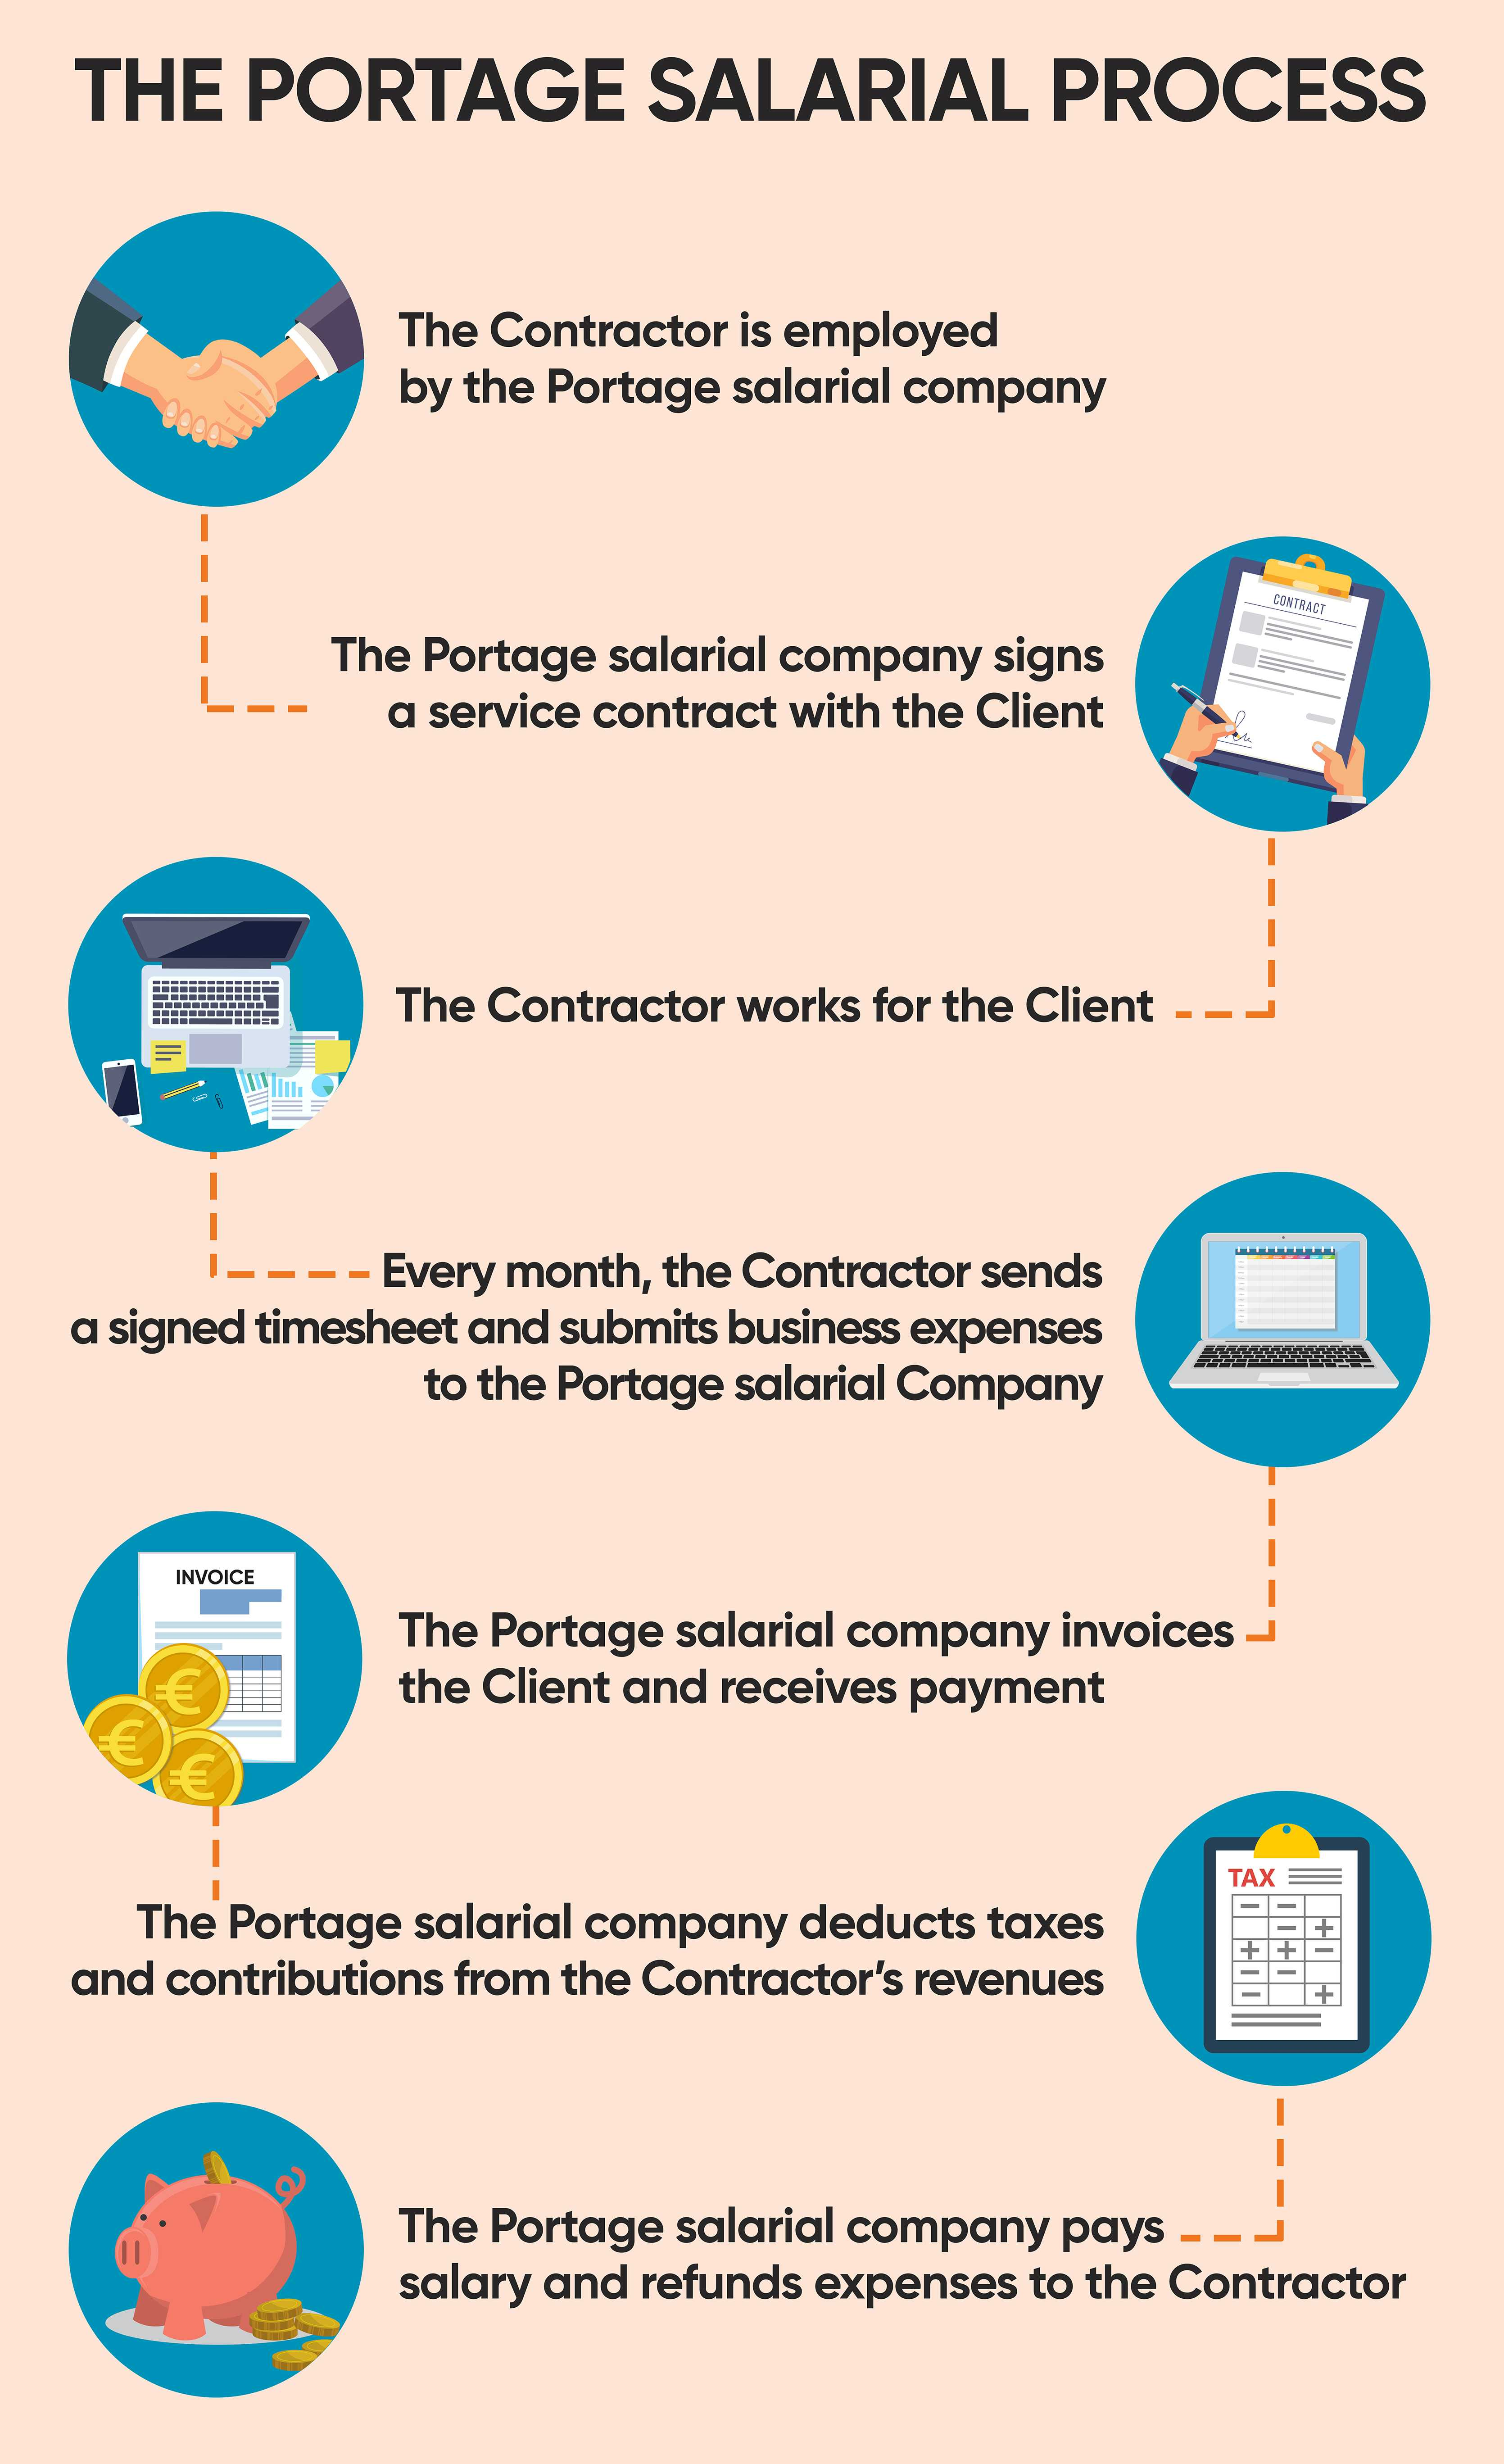 The Portage salarial process